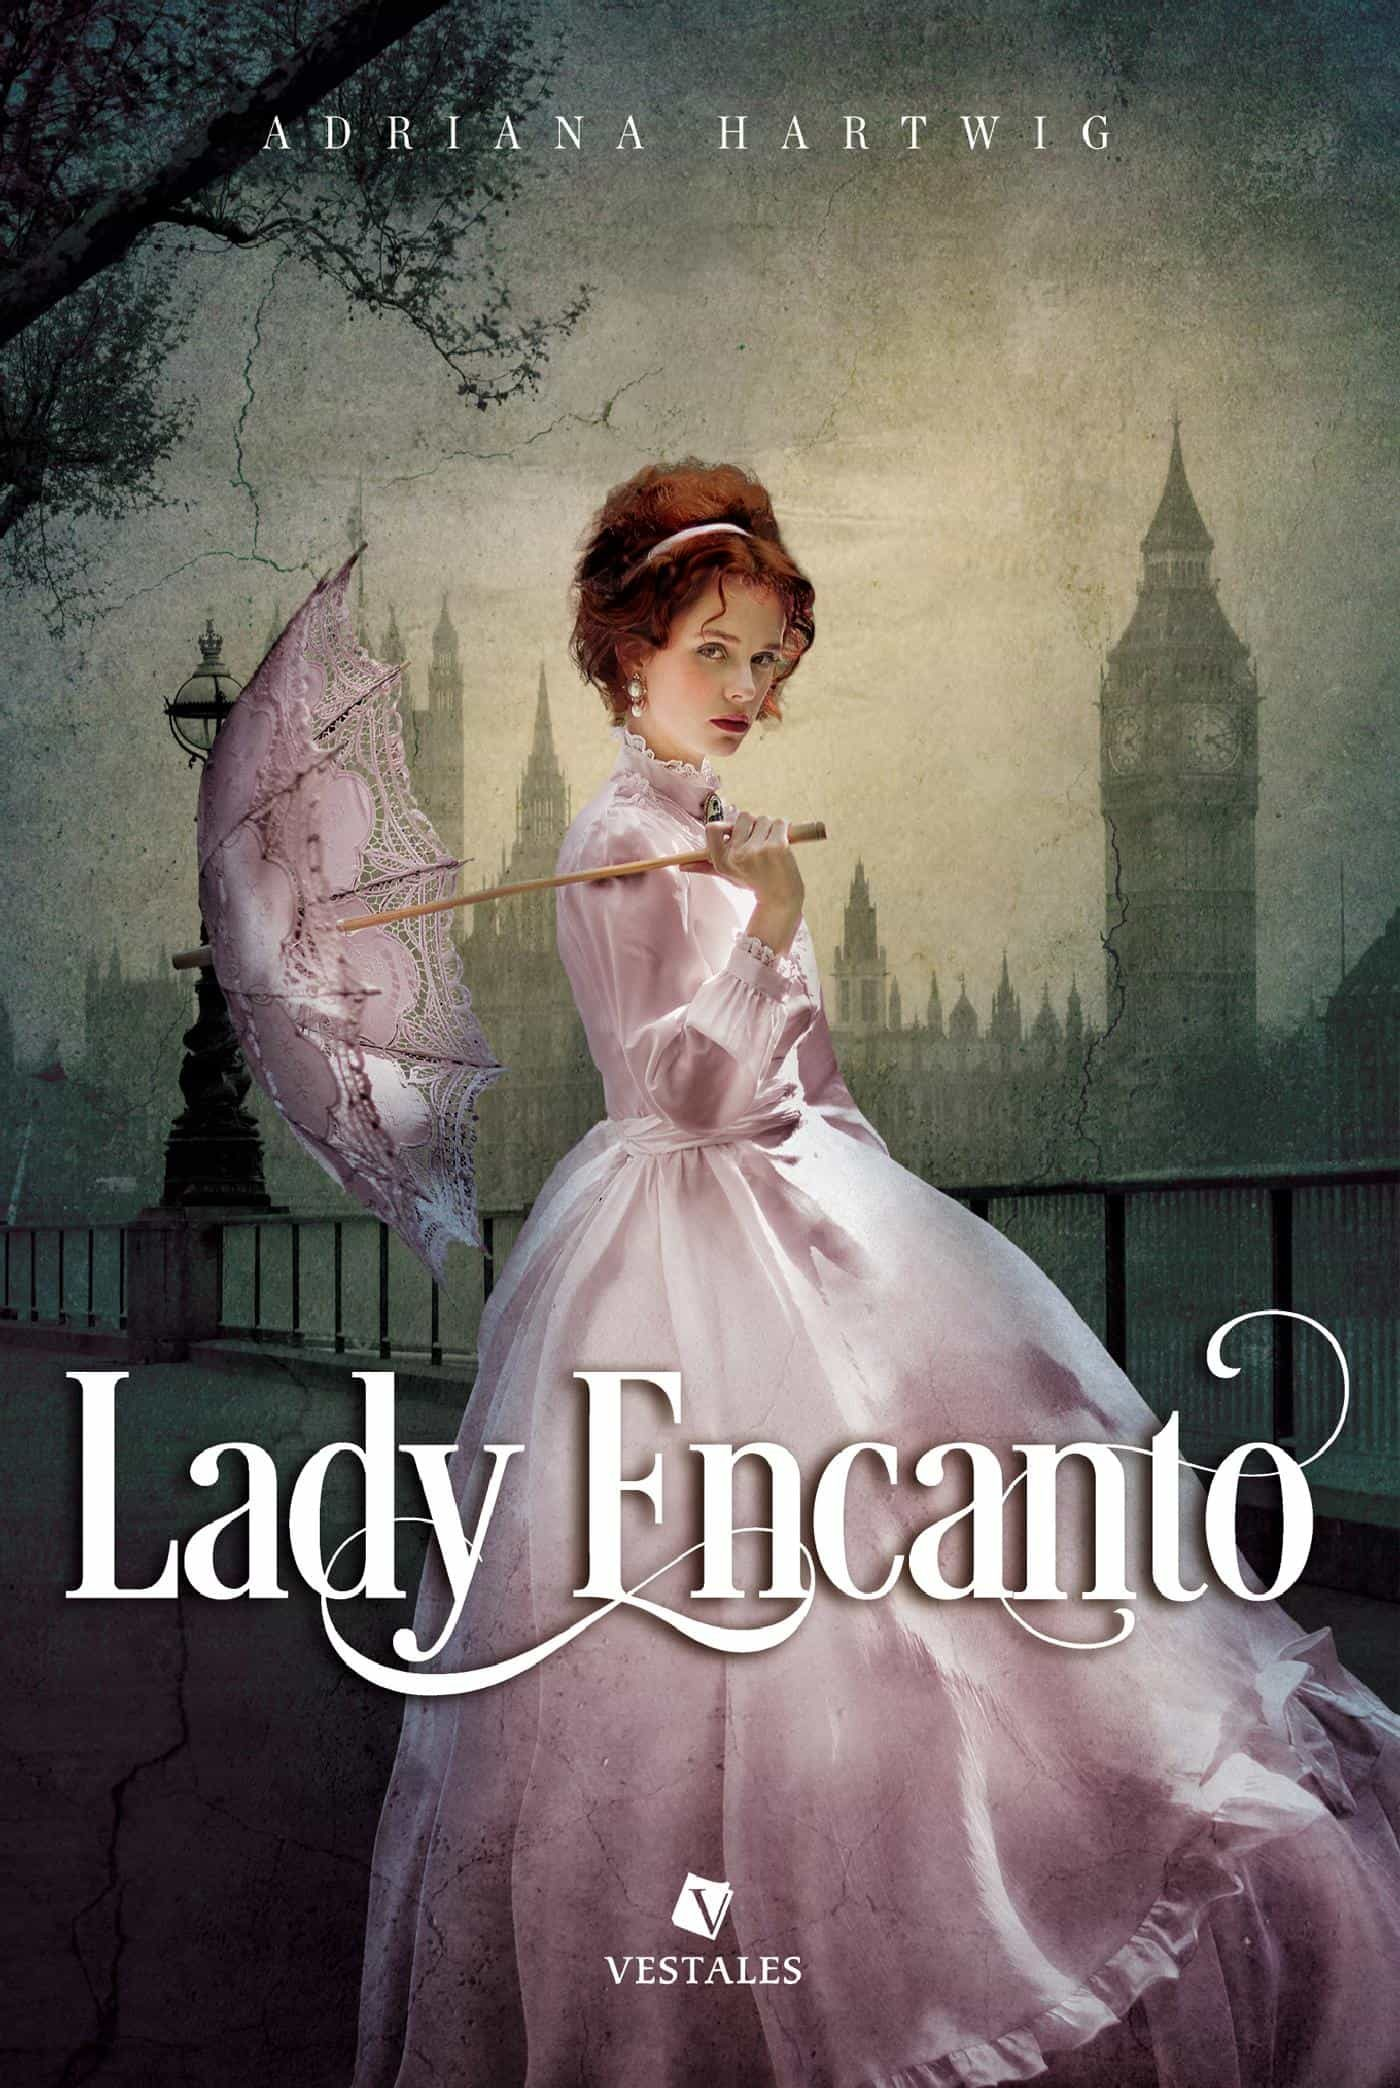 Ebooks gratuitos de Amazon para descargar para encender «Lady Encanto»